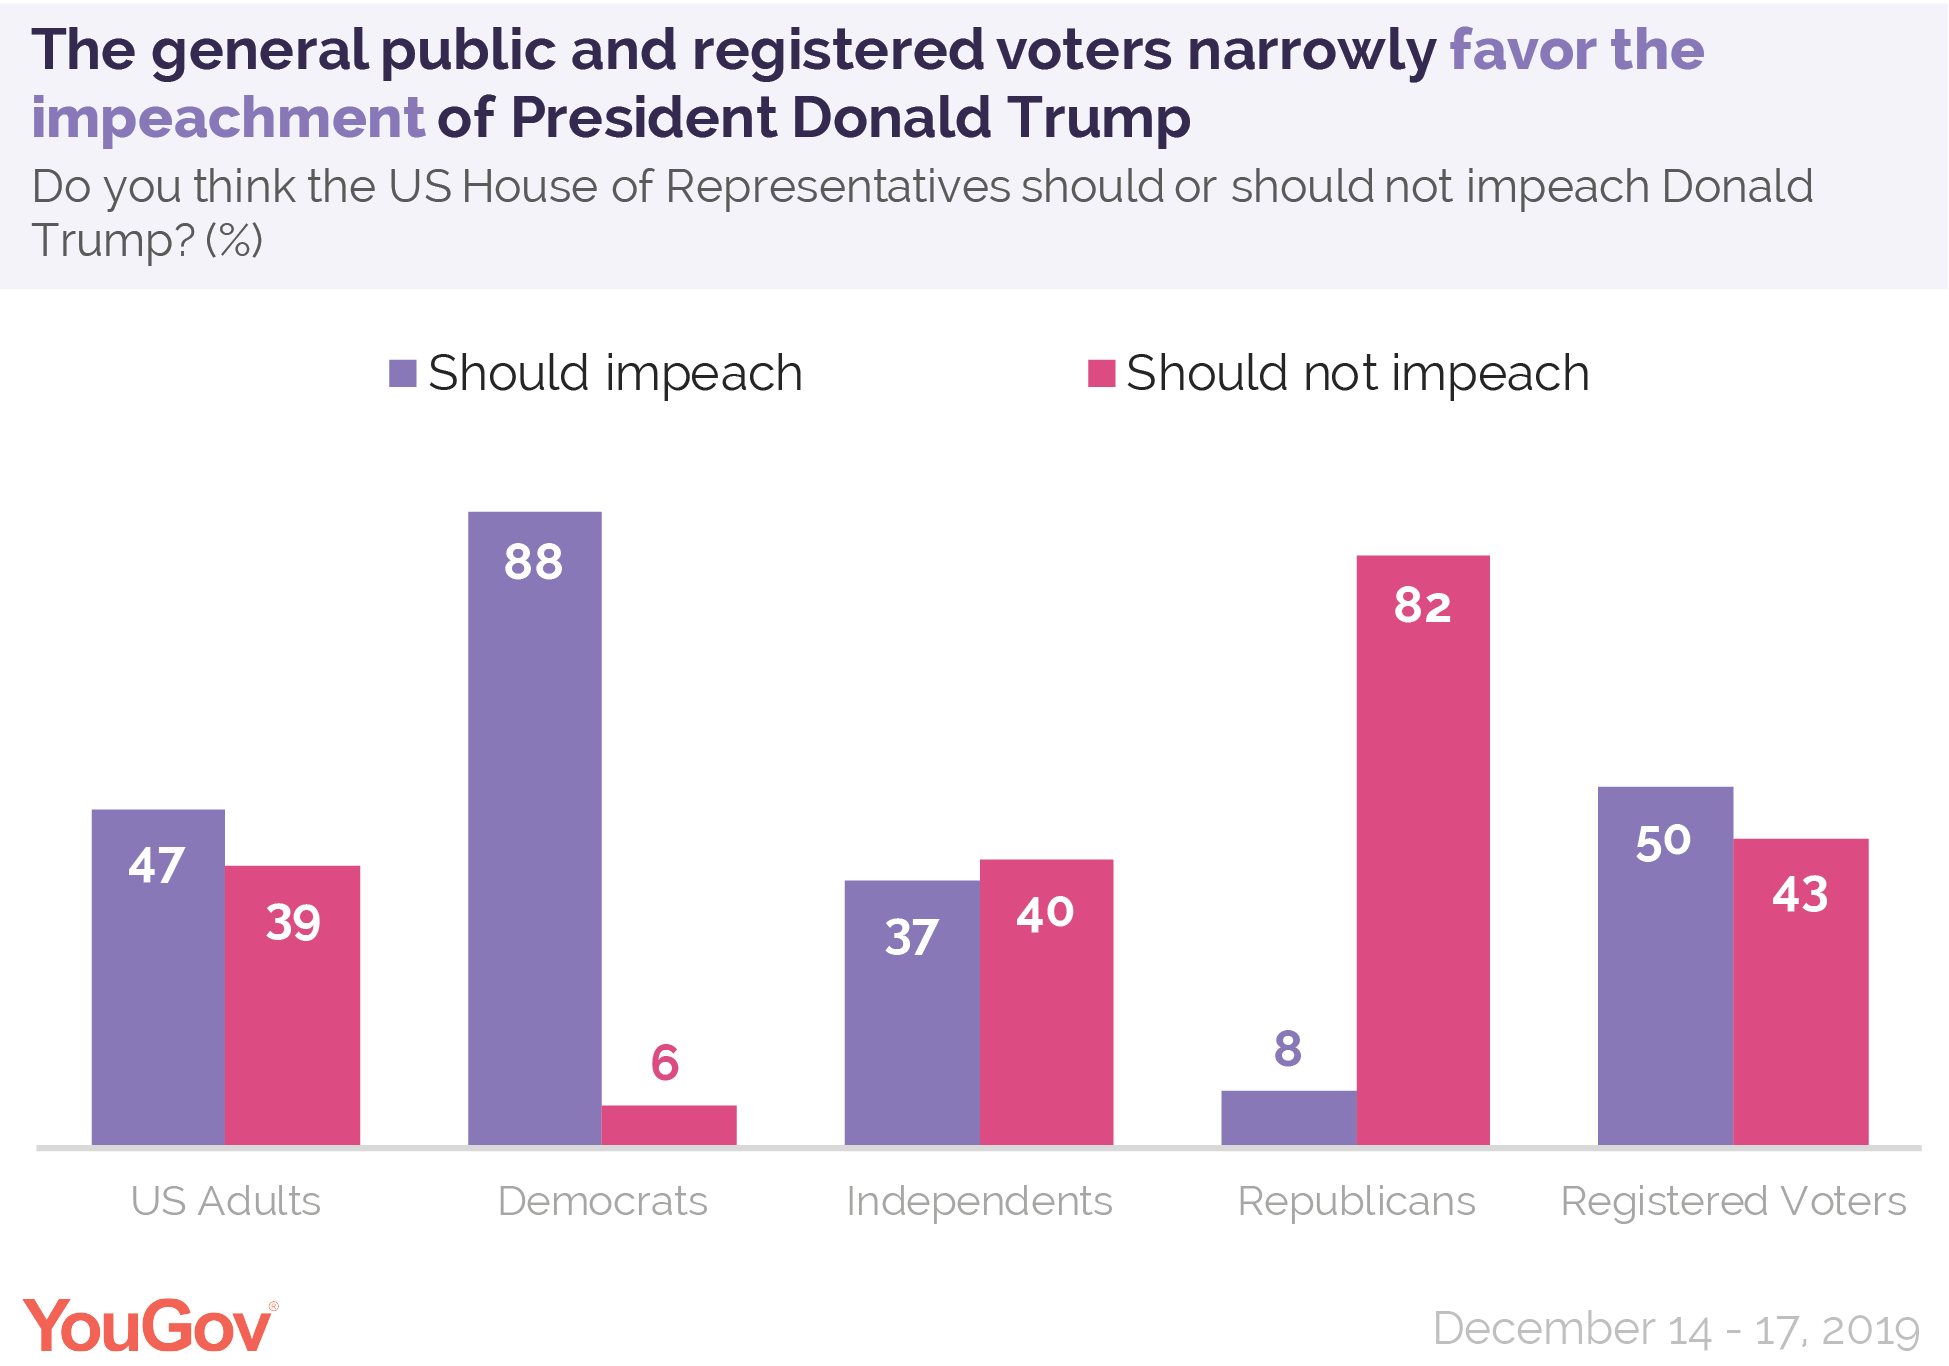 The general public and registered voters narrowly favor the impeachment of President Donald Trump